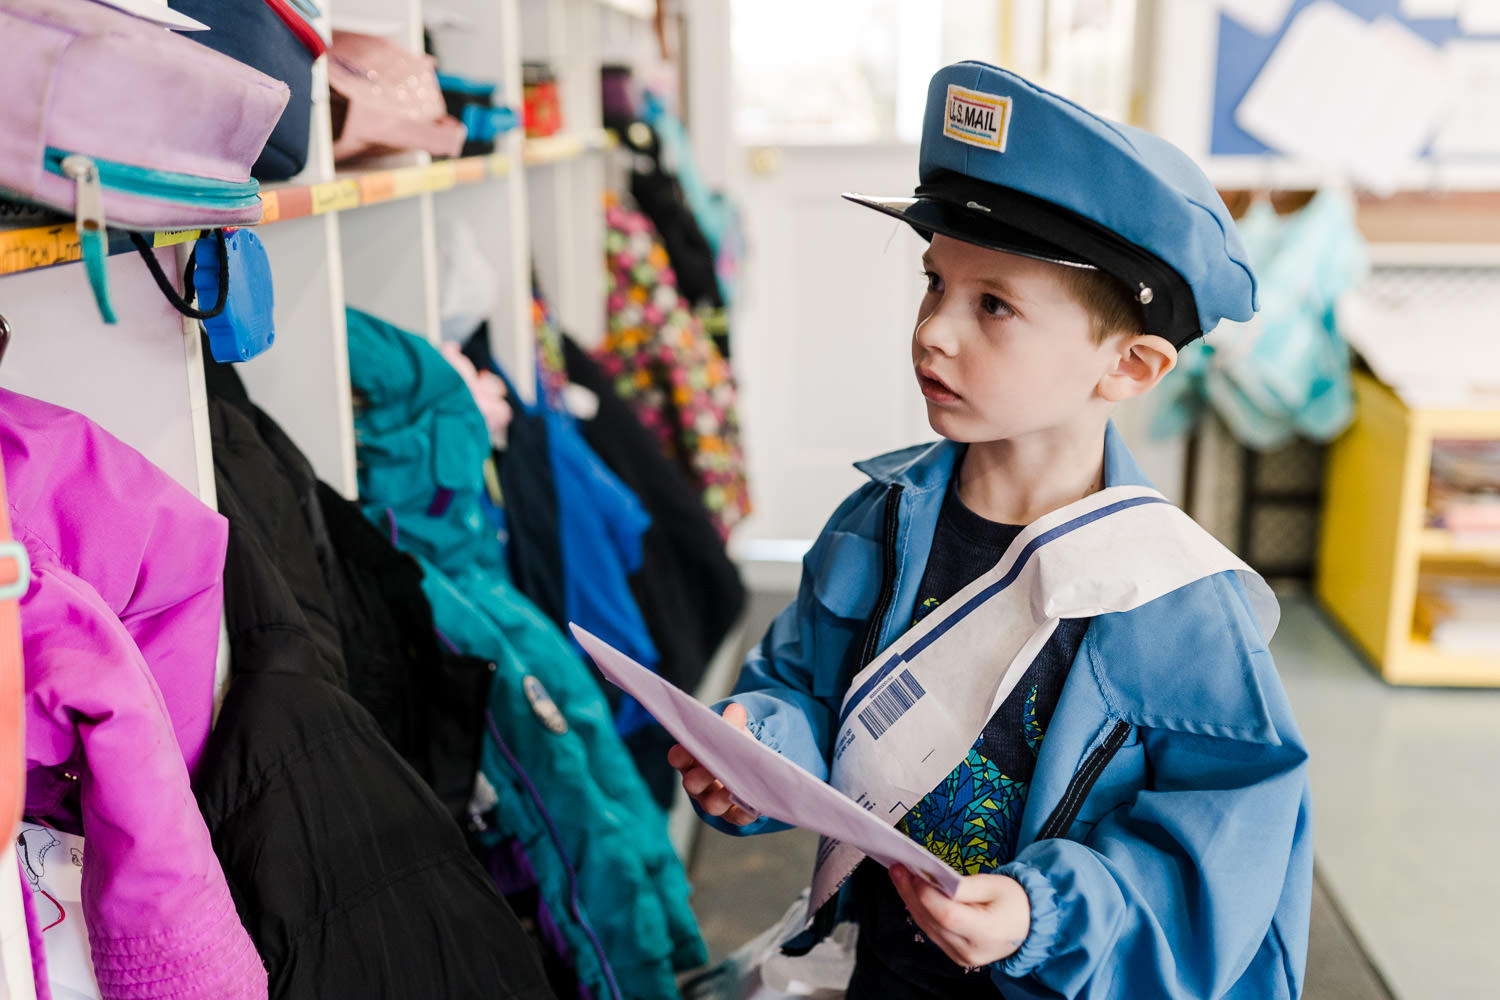 A little boy dressed as a mailman delivers envelopes to his friends' cubbies.